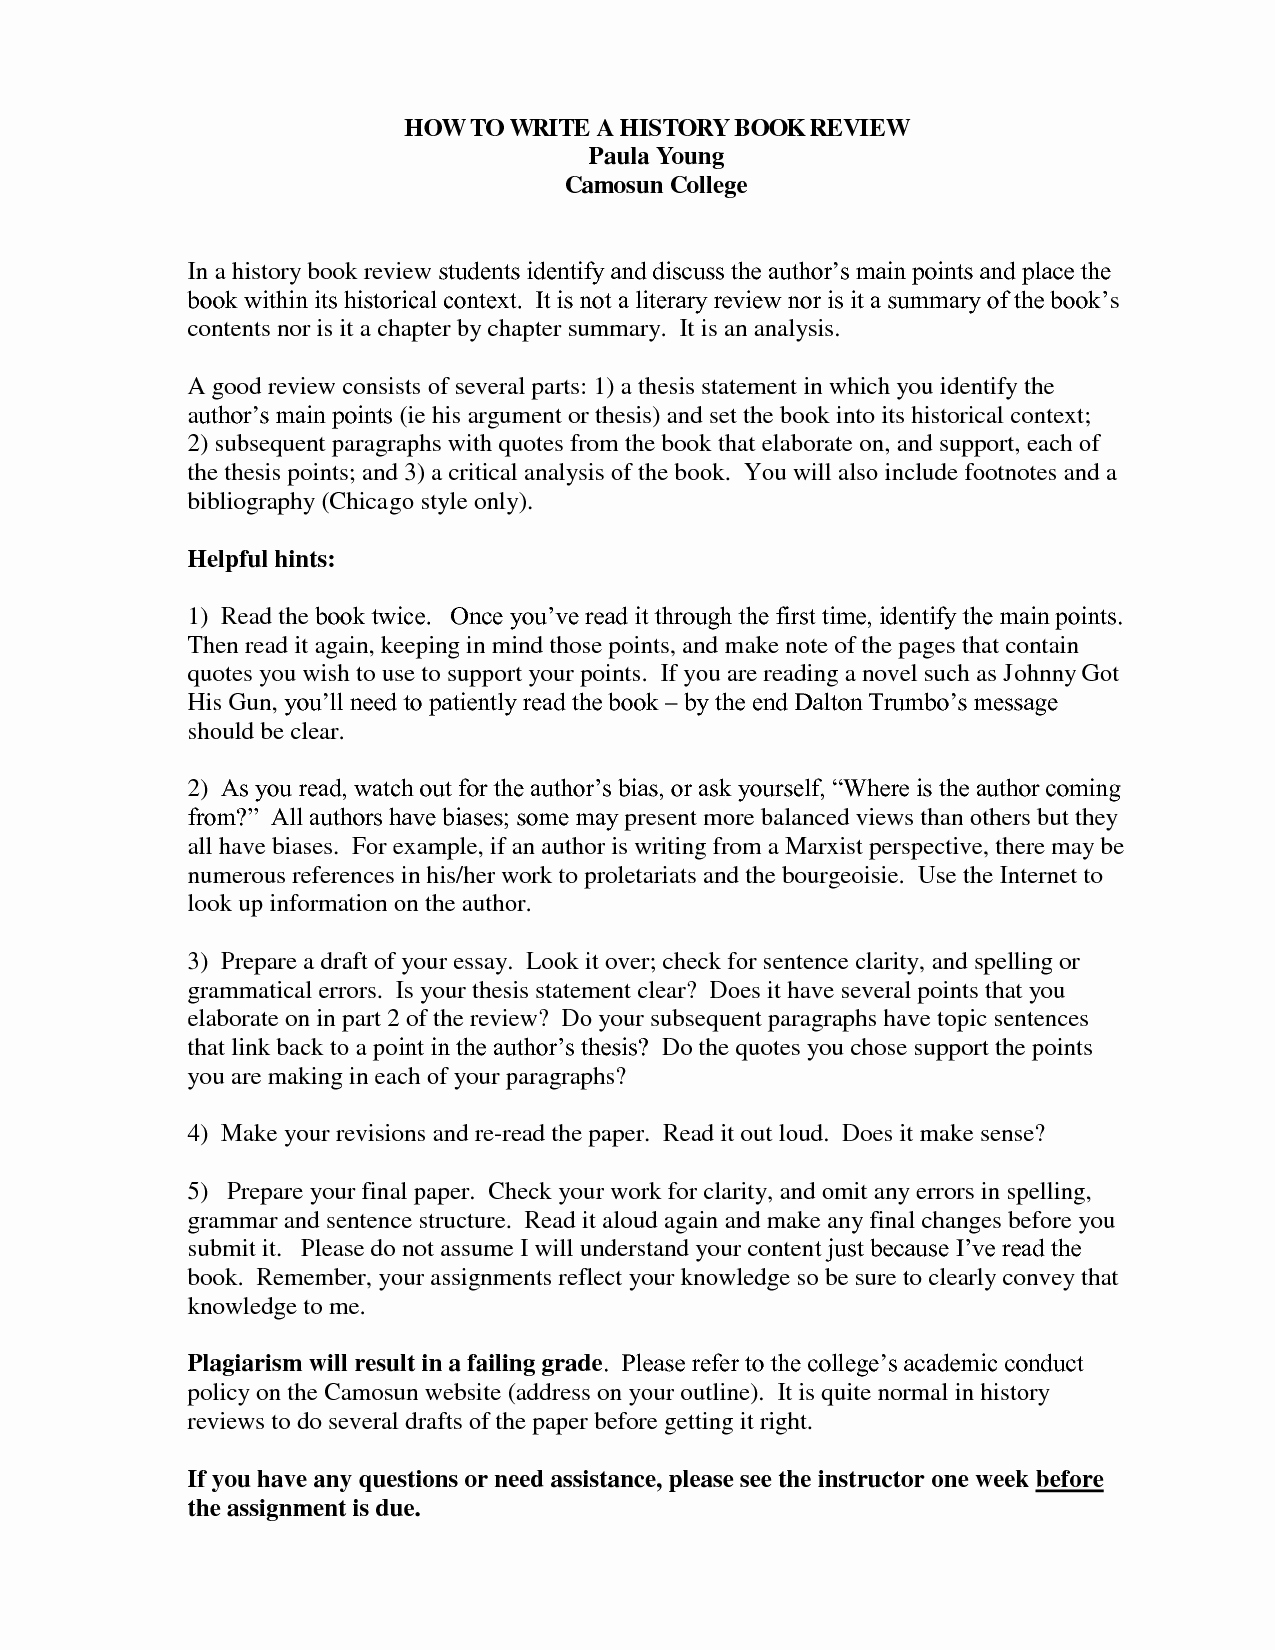 Sample Movie Review Essay Elegant Writing A Quality Book & Movie Review Report